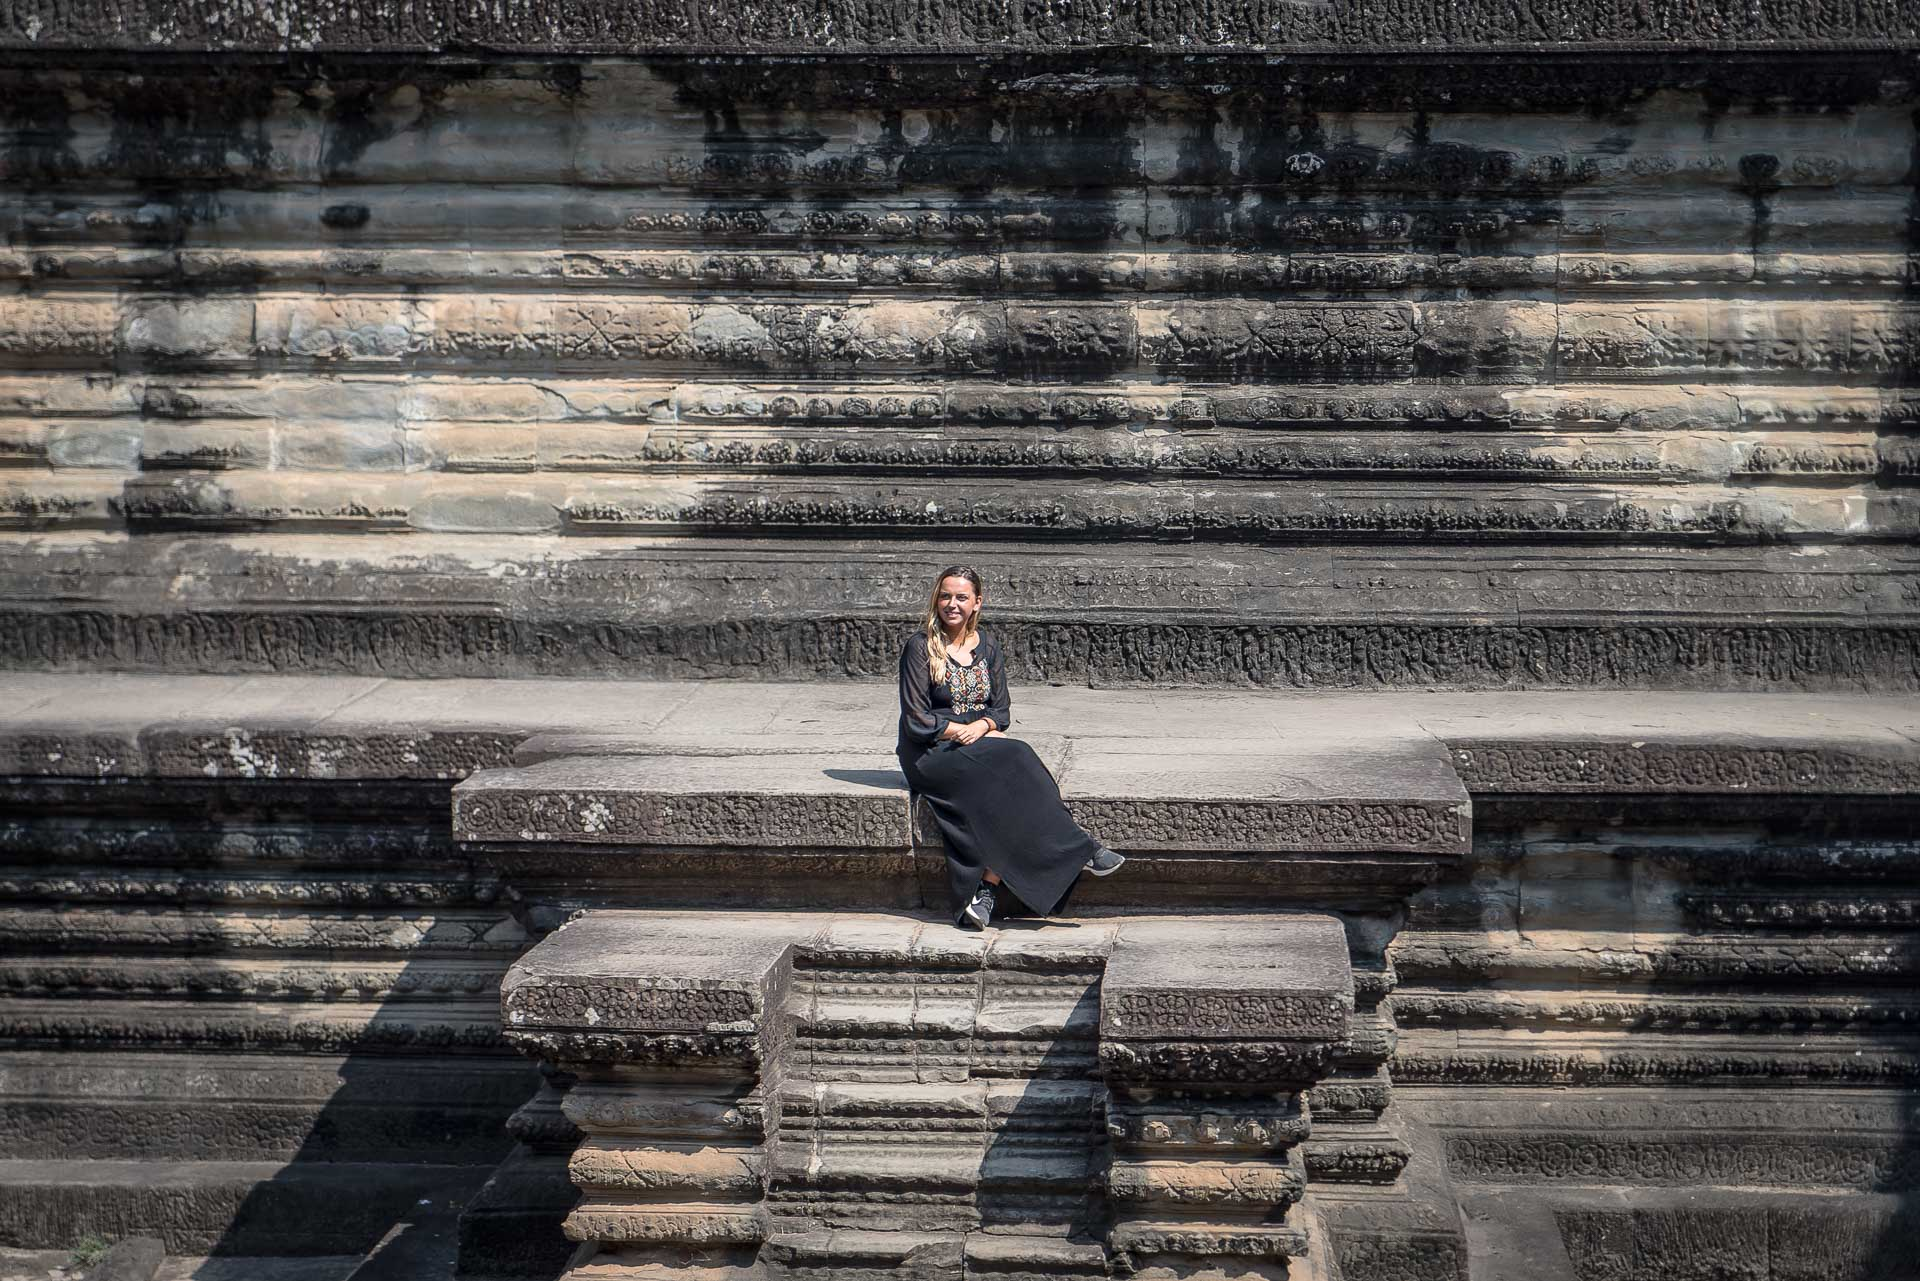 Lesvoyageuses-guide-voyage-Siem-reap-angkor-temples-Cambodge-8